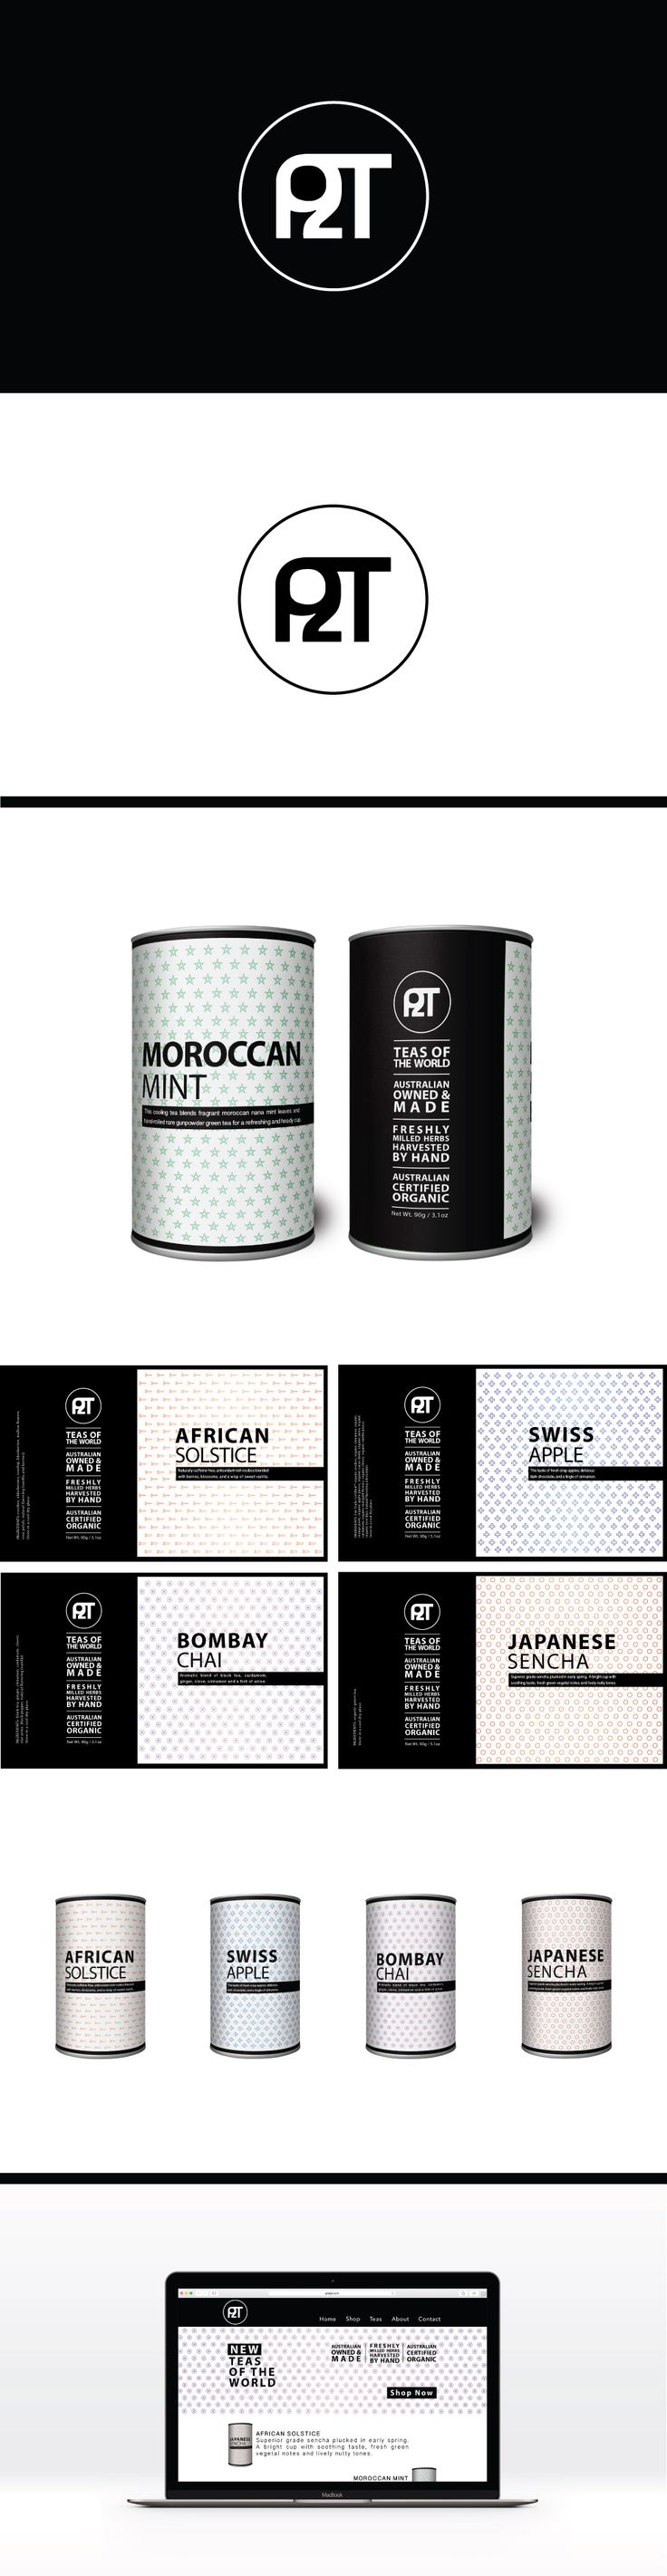 P2T Branding & Packaging Concept. www.leahcussencreative.com #packaging #graphicdesign #tea #lccreative